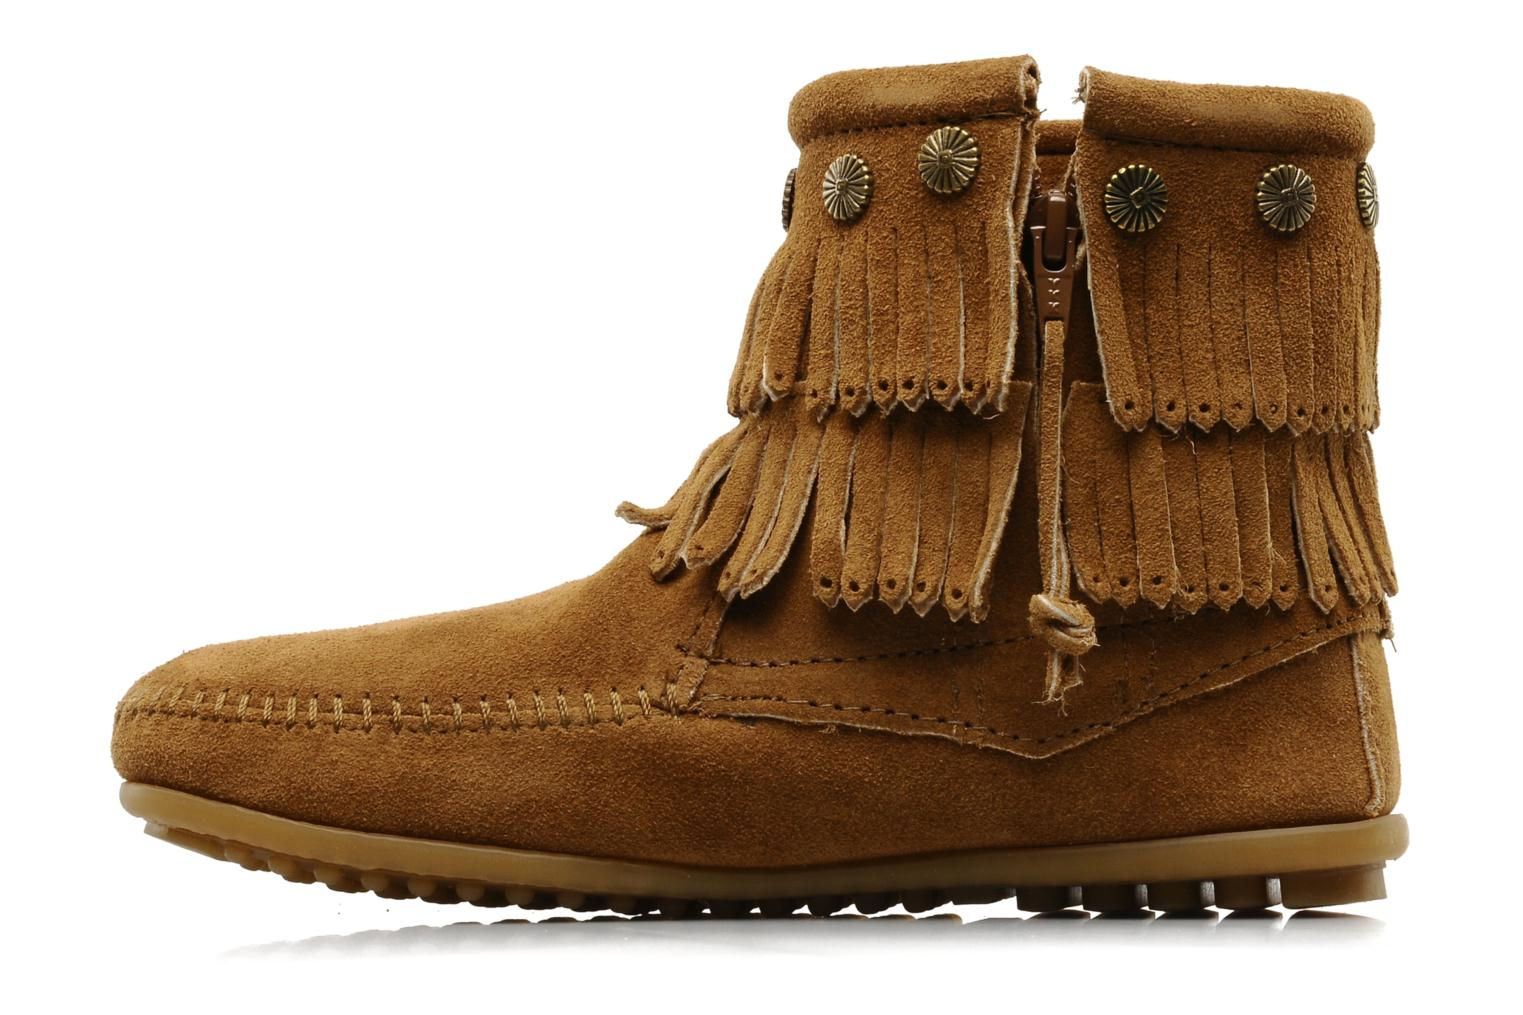 Bottines et boots Minnetonka DOUBLE FRINGE BT Marron vue face